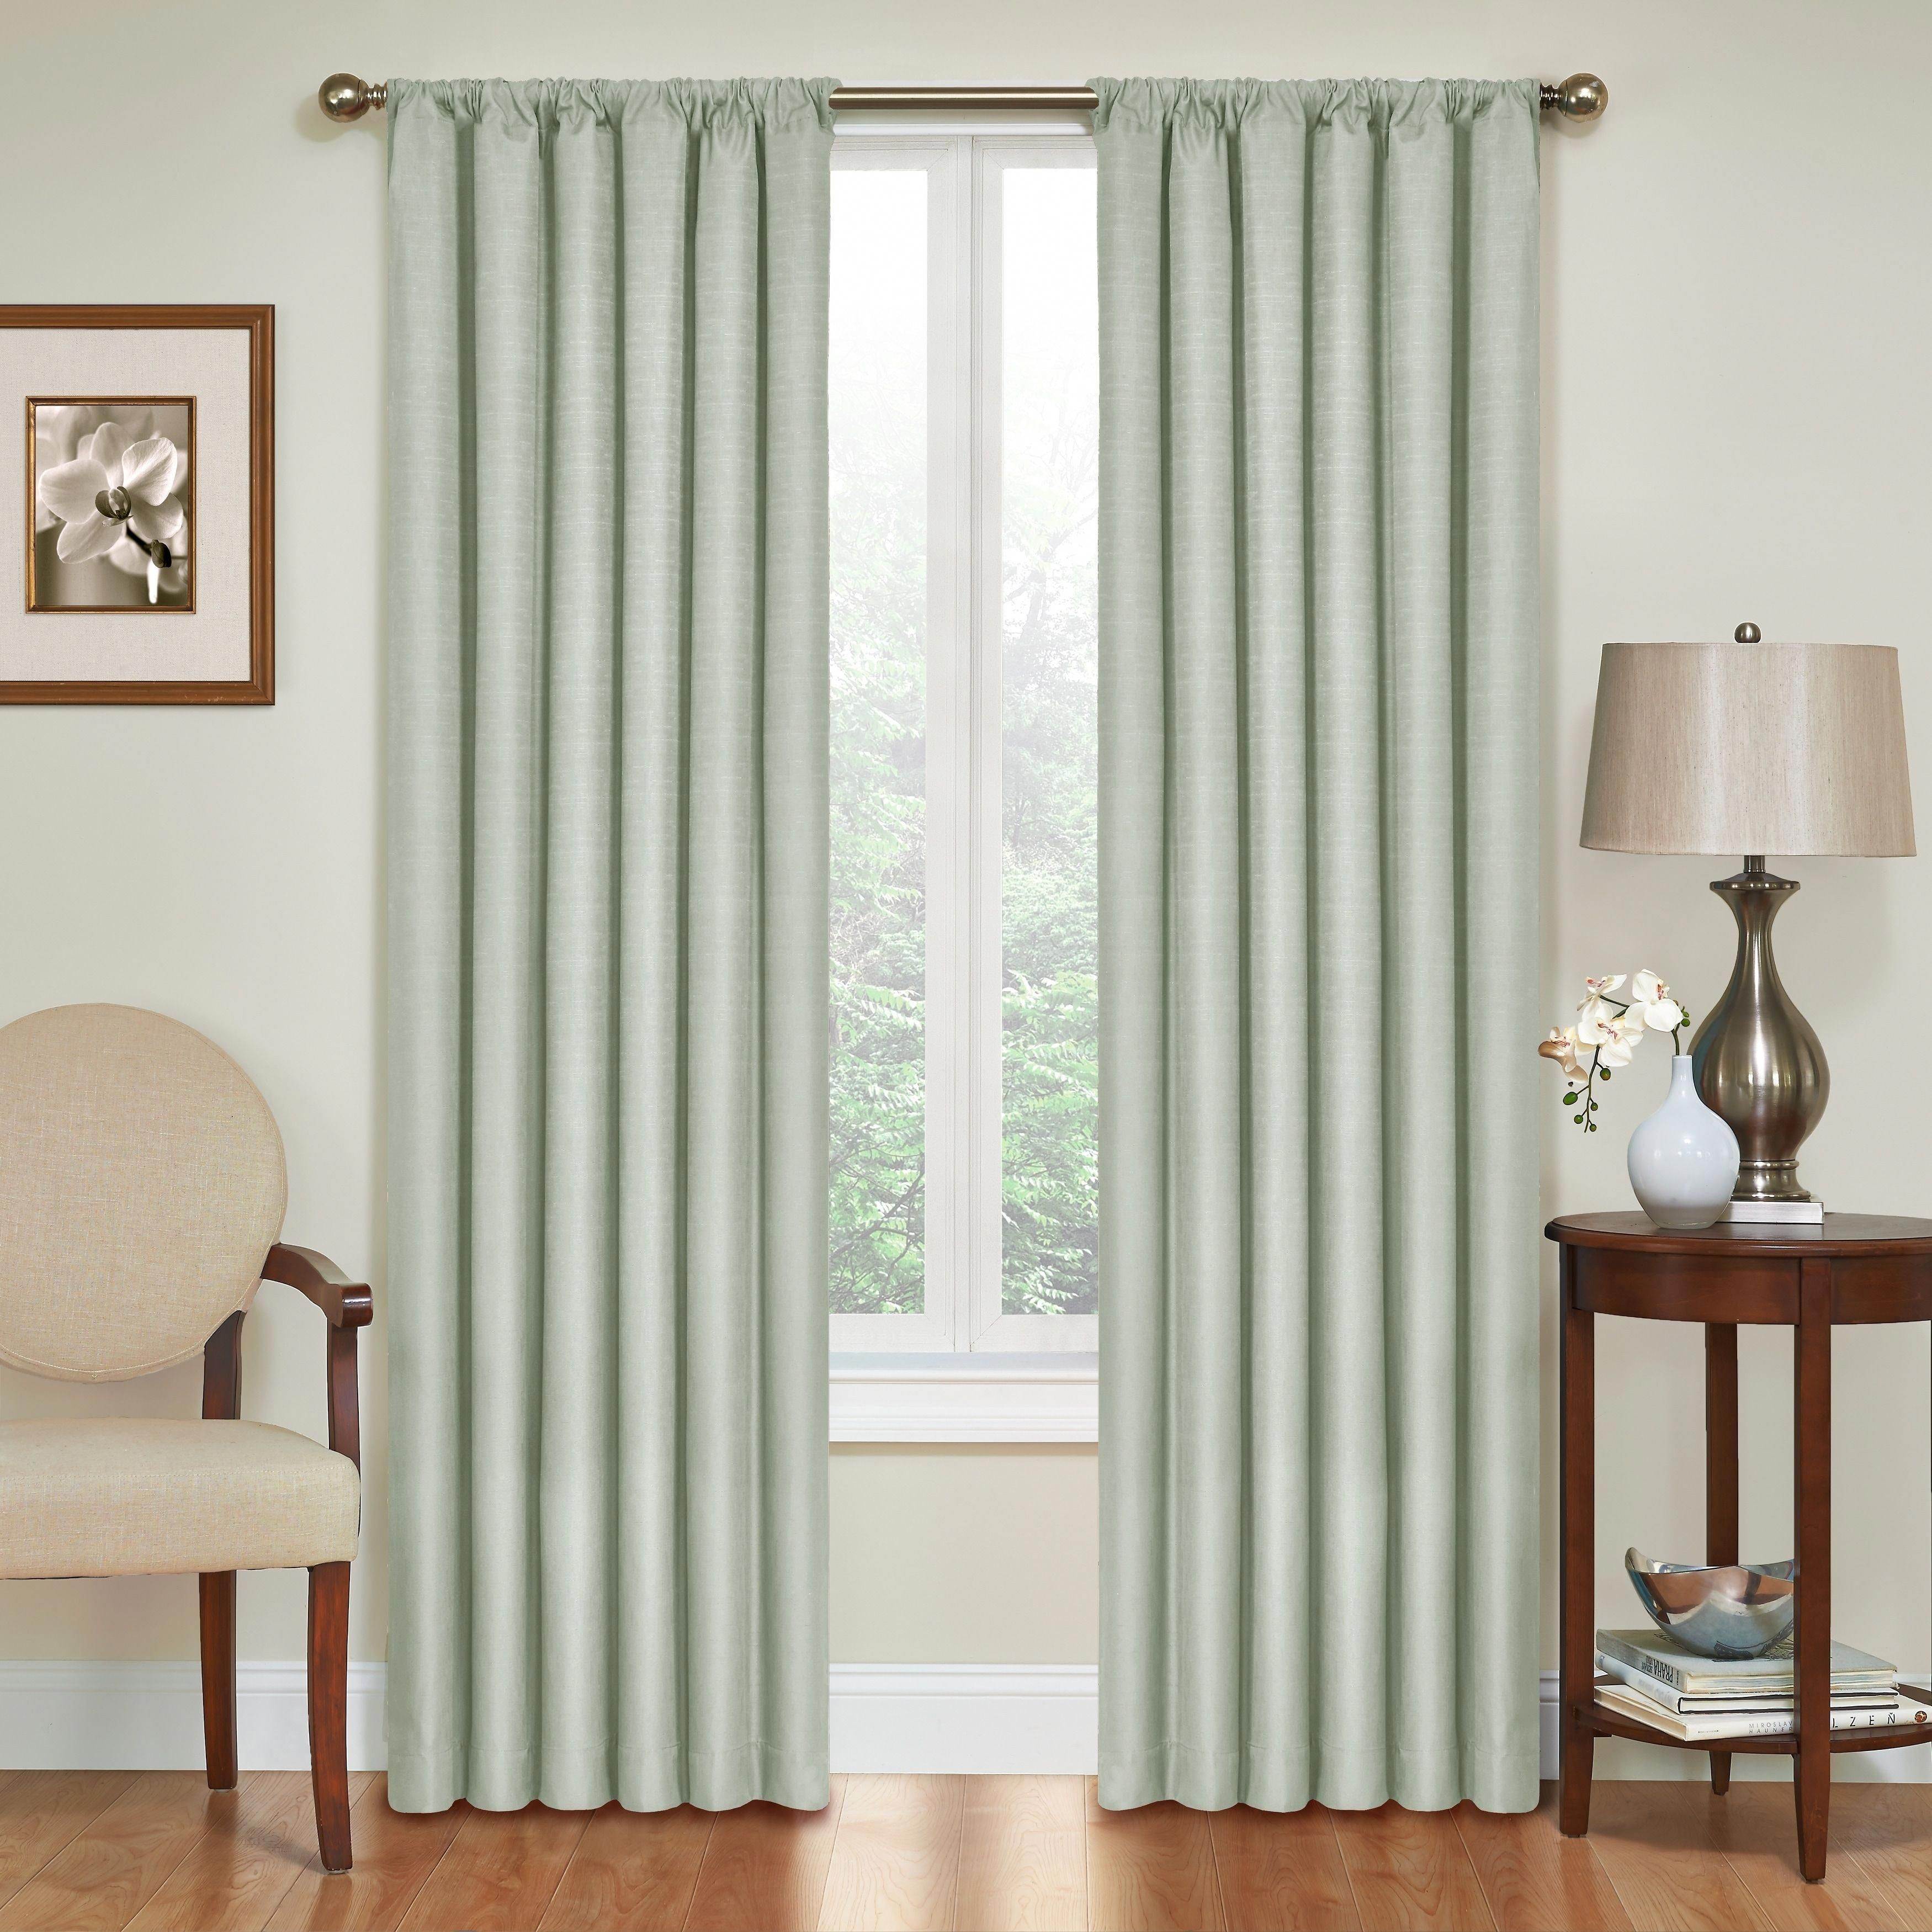 Best Curtains For Kids Rooms Creative Curtain Ideas For Style And Comfort Panel Curtains Blackout Panels